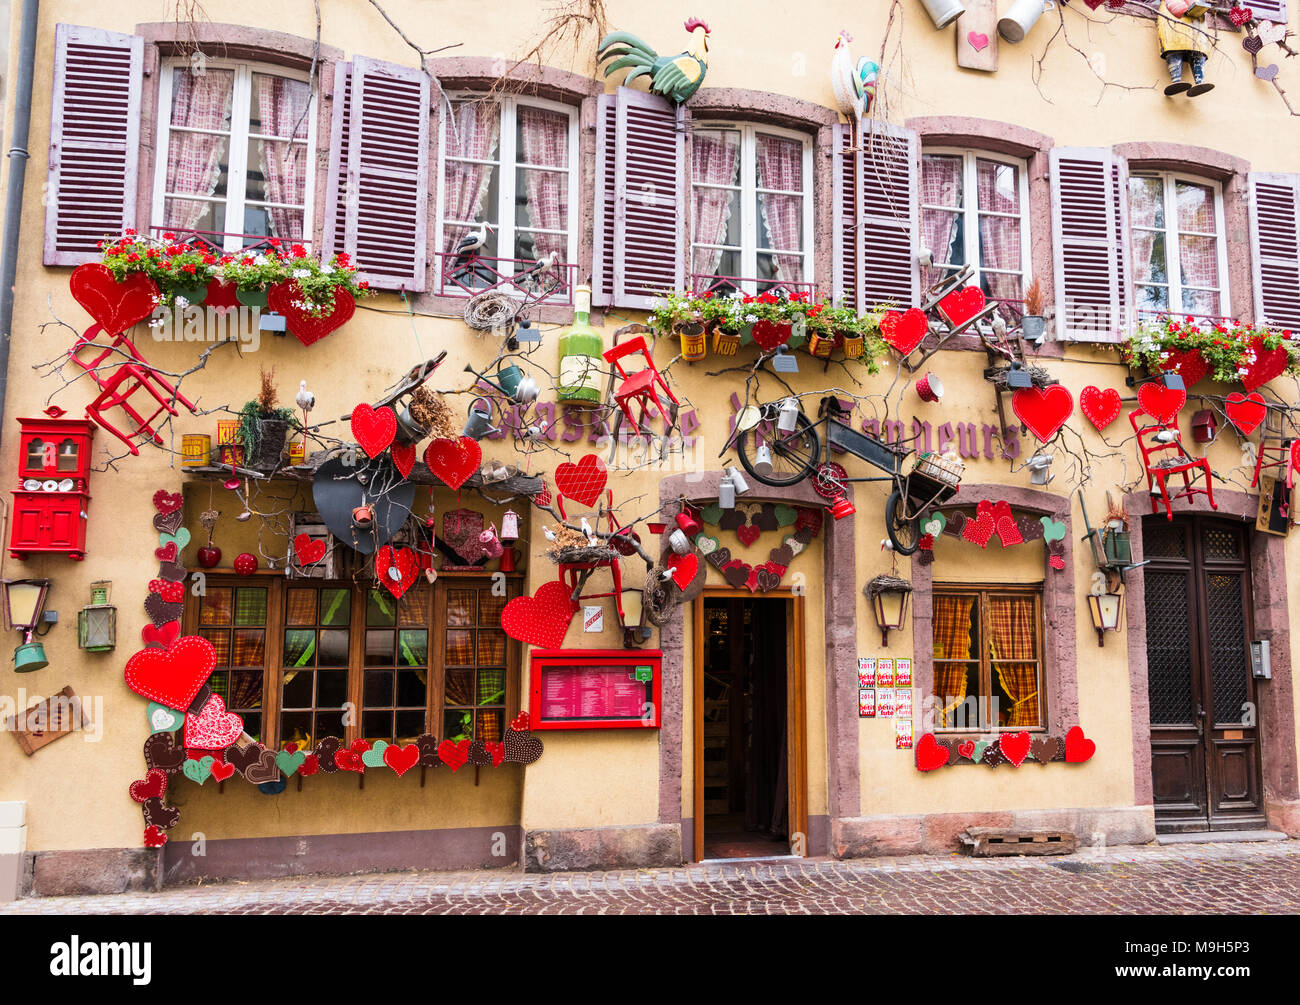 A traditional restaurant in the old town of Colmar, Alsatian Wine Route, France - Stock Image